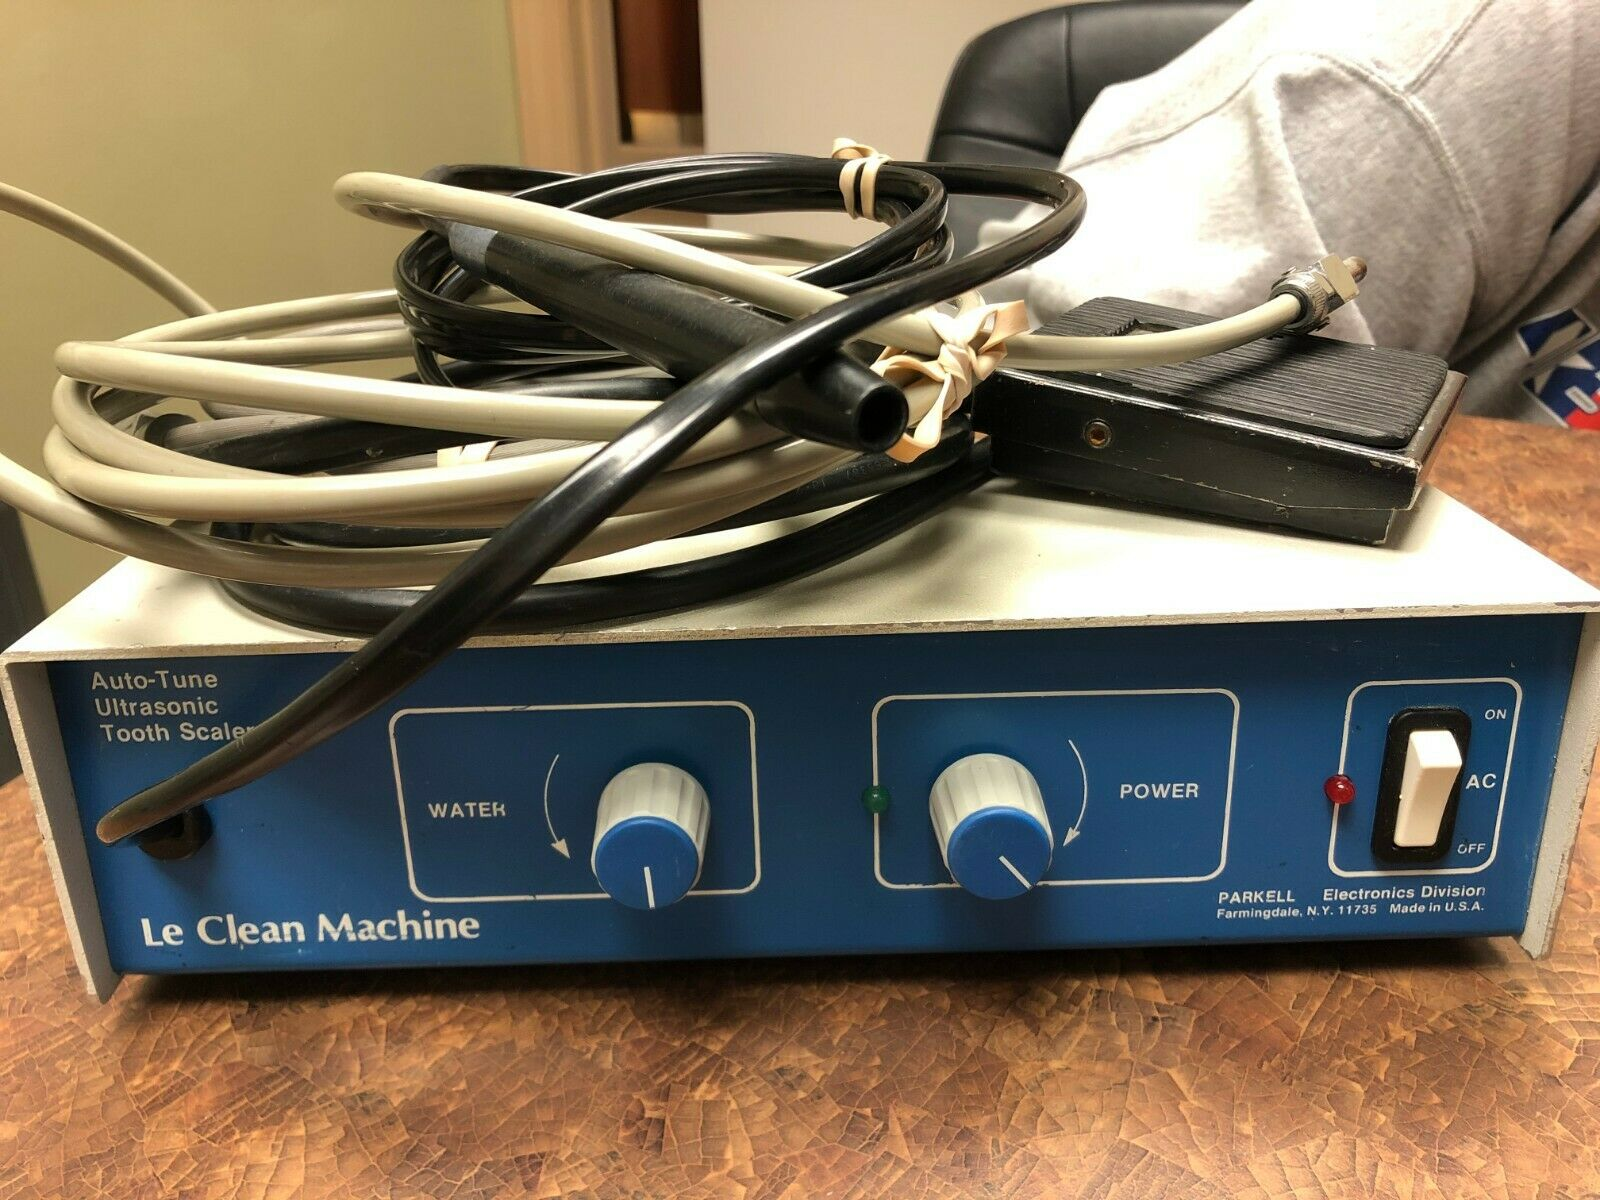 Parkell Le Clean Machine Ultrasonic Prophy Scaler D550